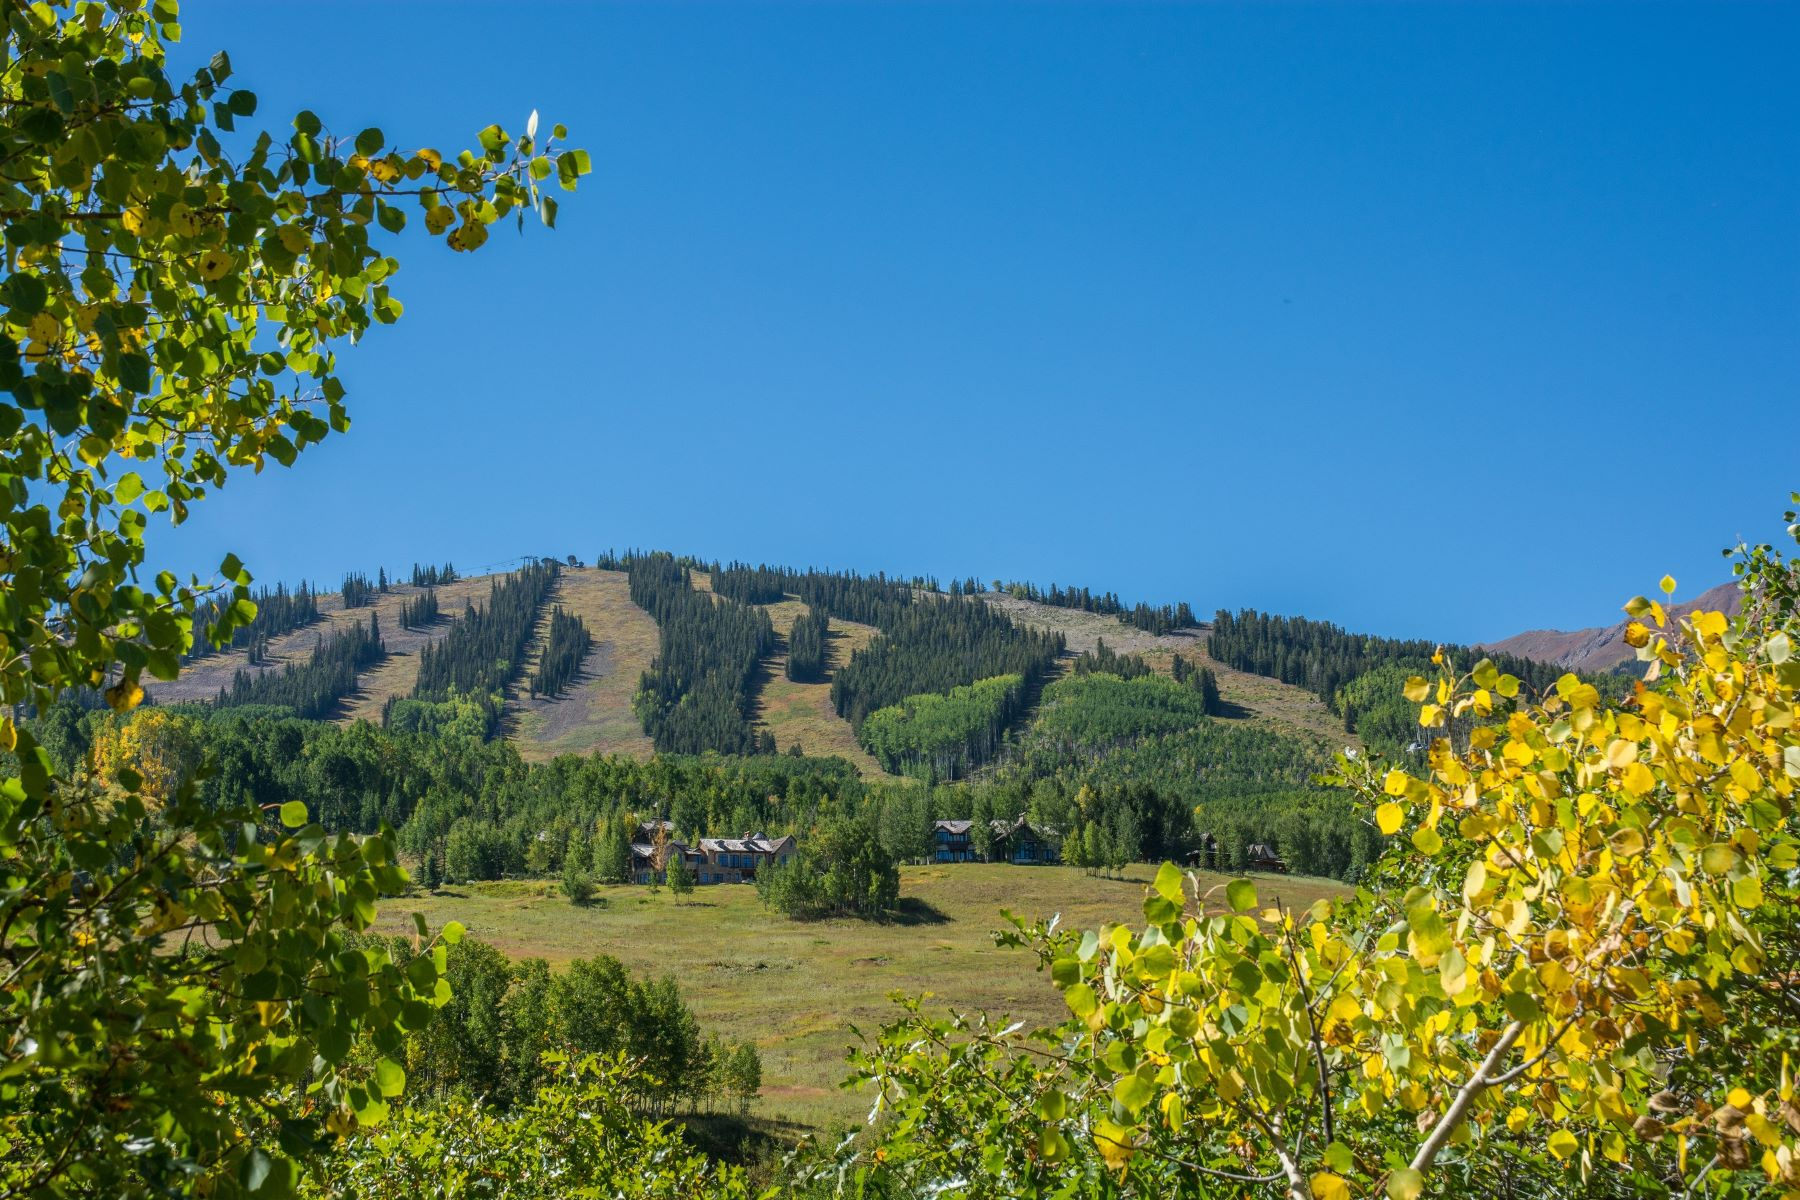 Property для того Продажа на Supreme View Lot in The Divide 825 Divide Road, Snowmass Village, Колорадо 81615 Соединенные Штаты